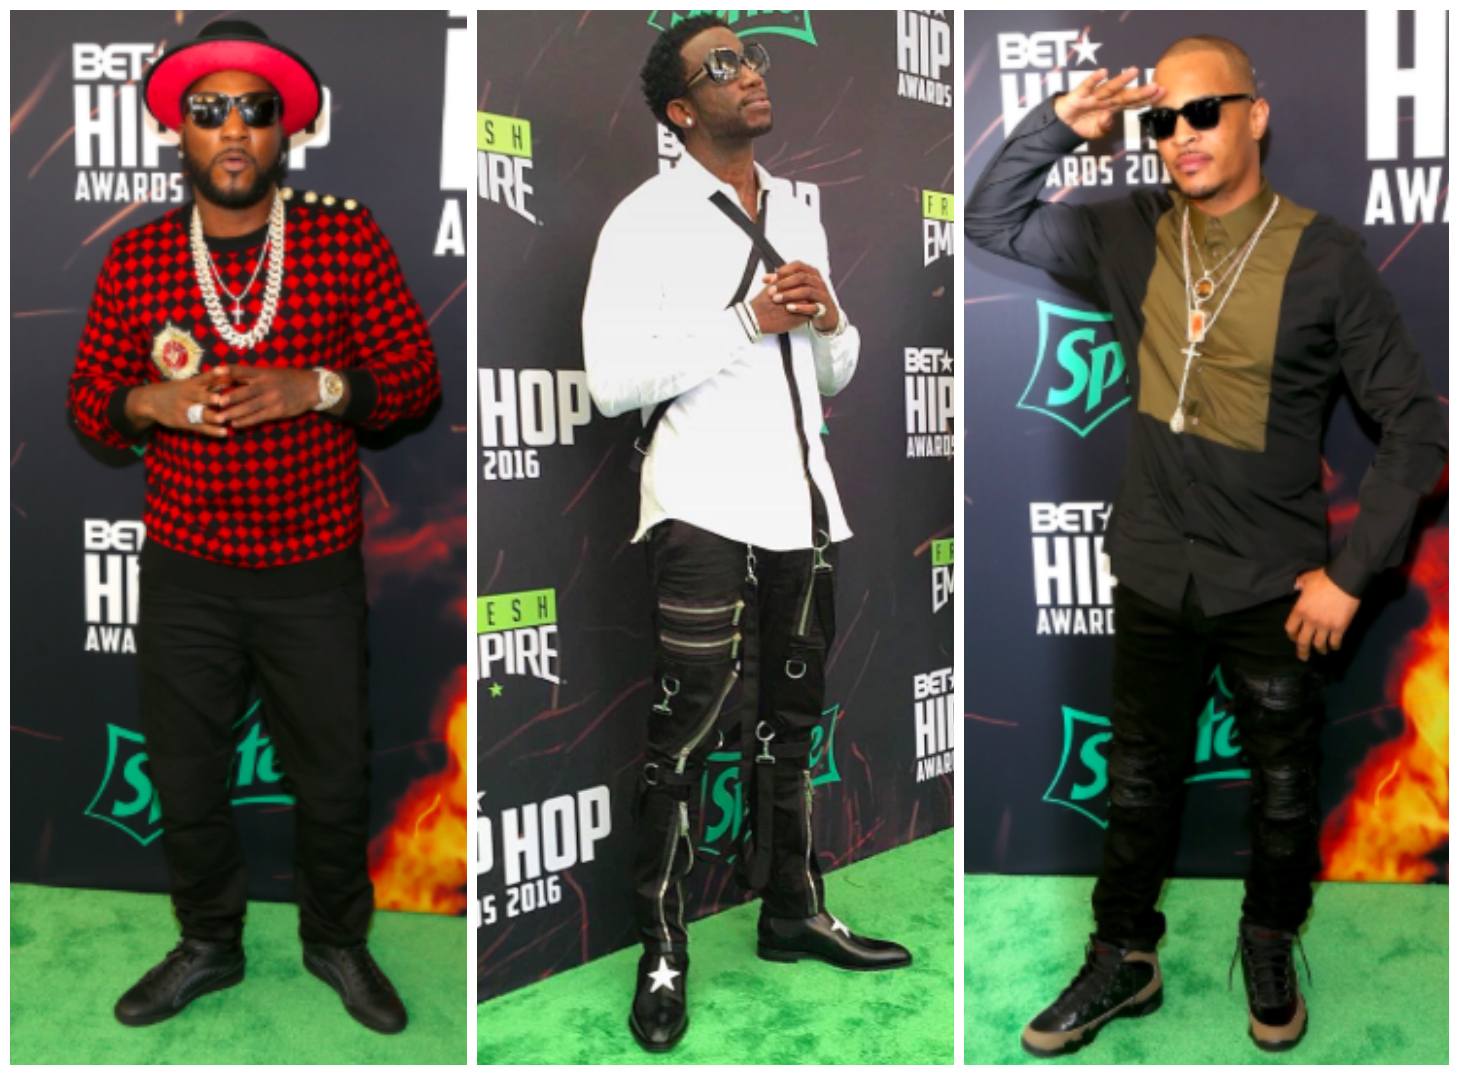 BET Hip Hop Awards Red Carpet—Which Would You Wear?